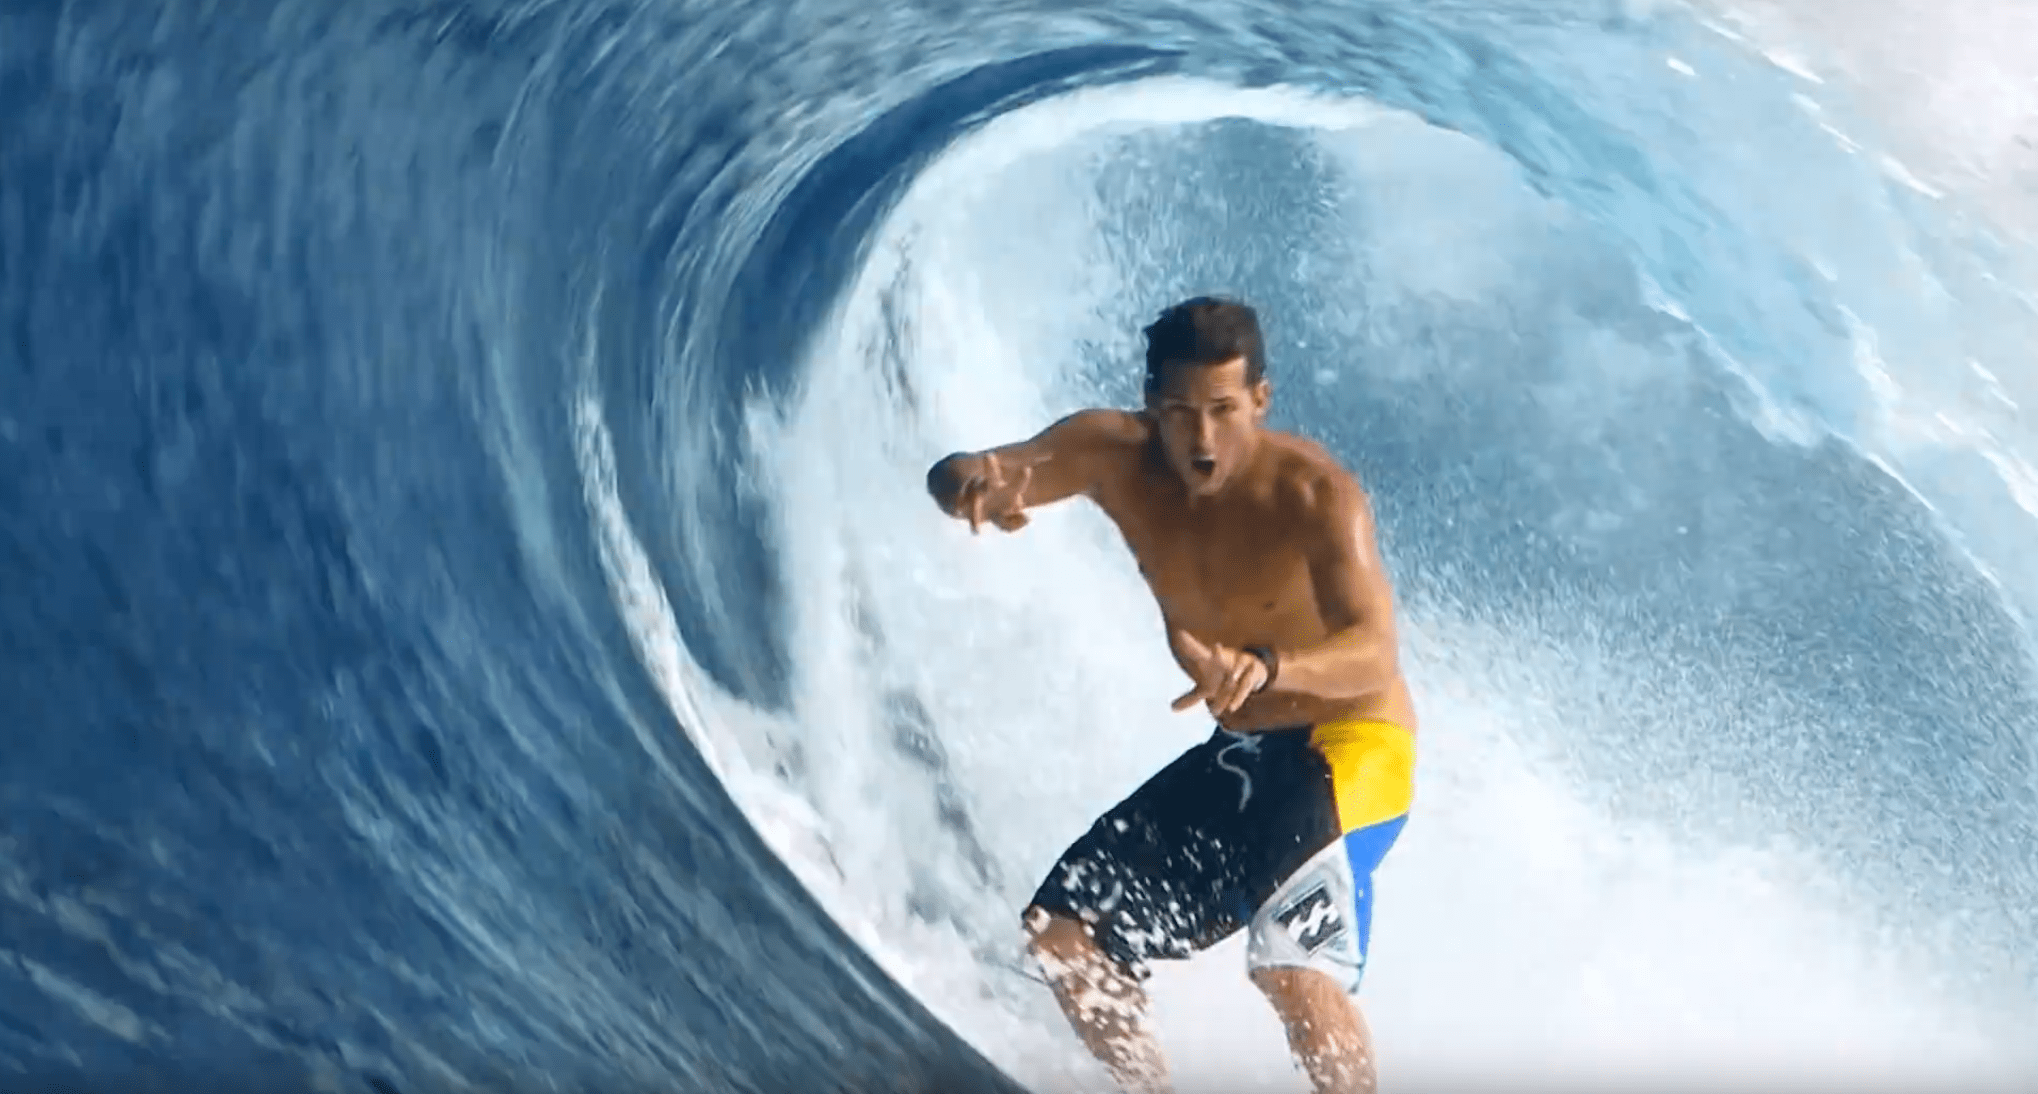 Surfer Irons Died of Heart Attack and Drugs, Autopsy Says ...